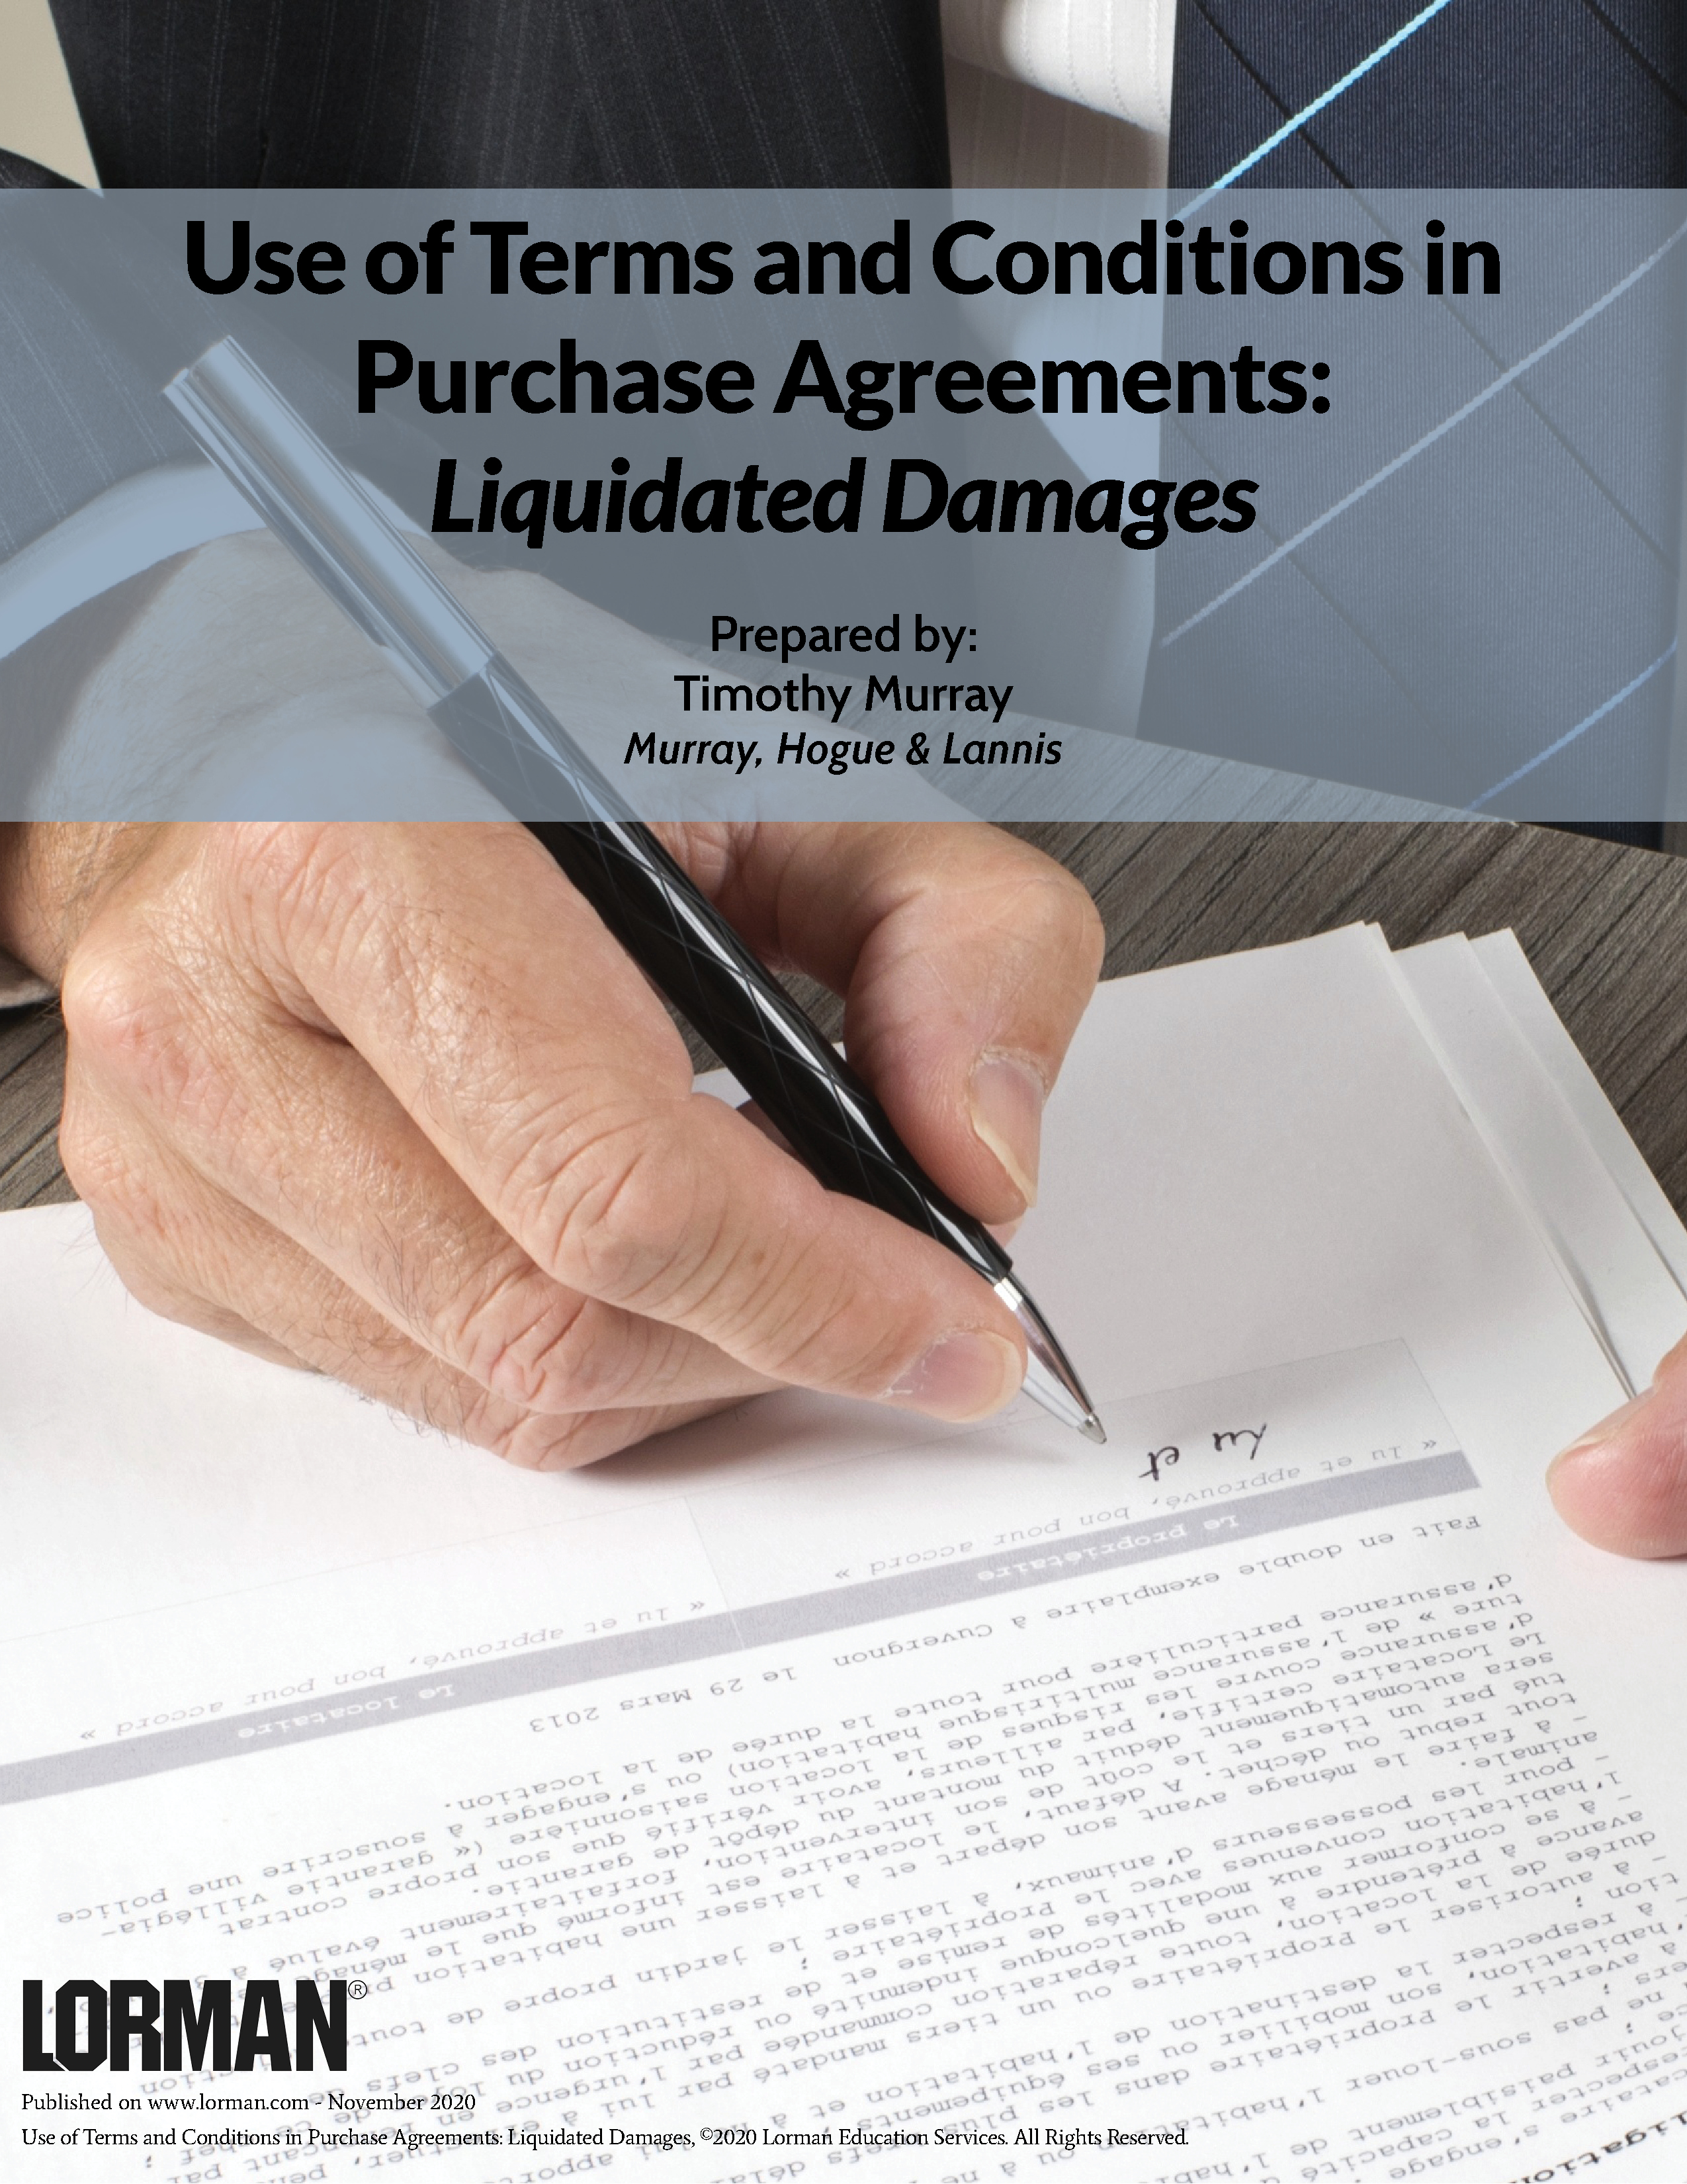 Use of Terms and Conditions in Purchase Agreements: Liquidated Damages